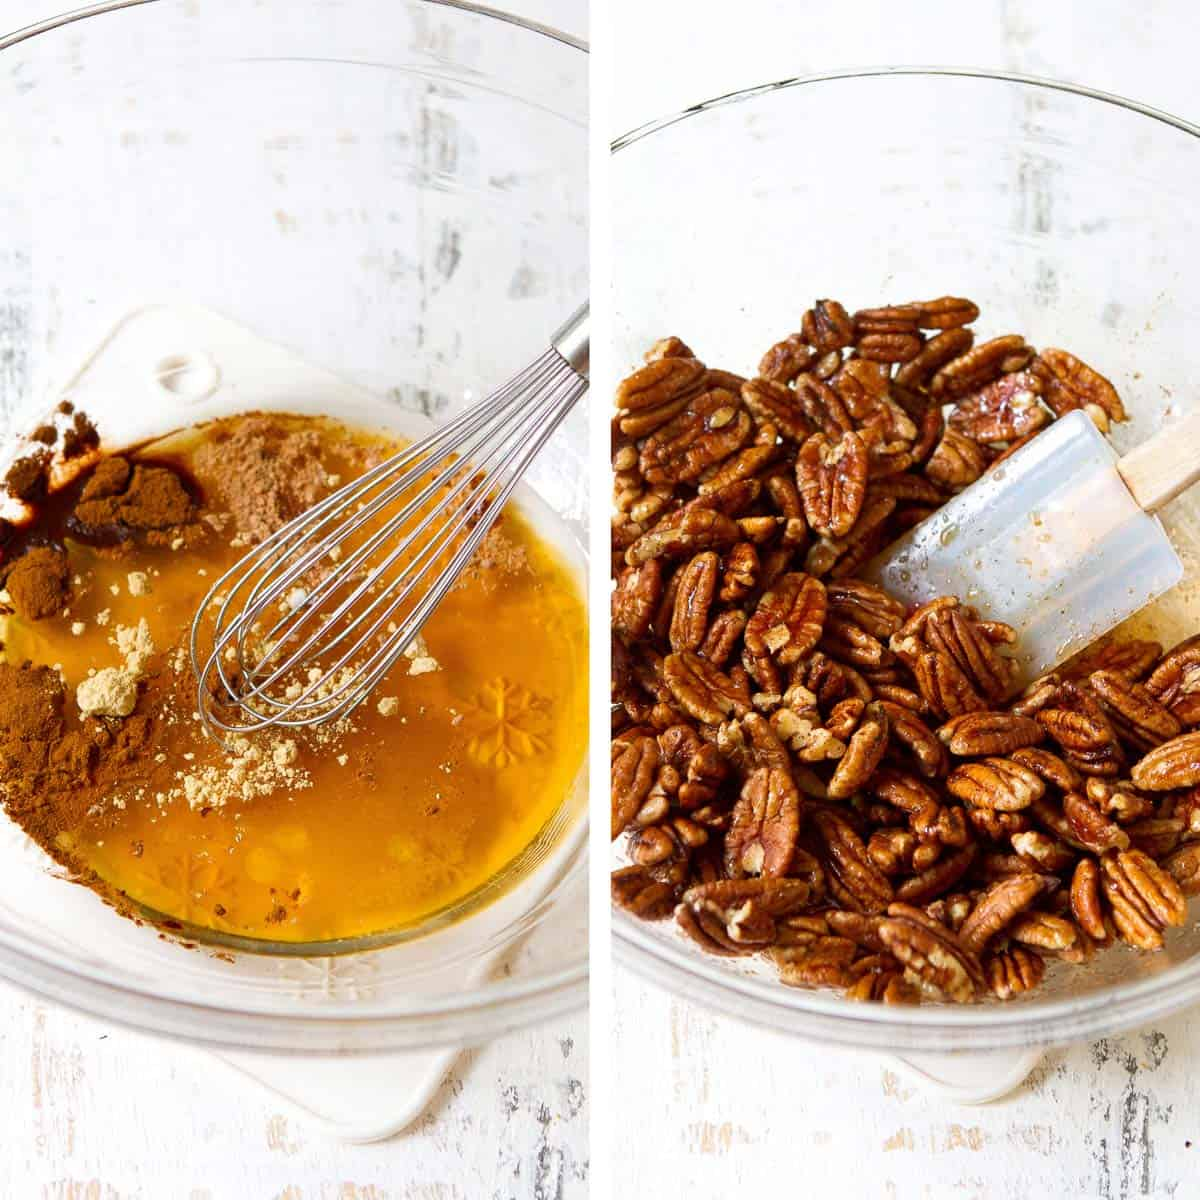 Collage. Whisking together maple syrup and spices, and stirring in pecans.